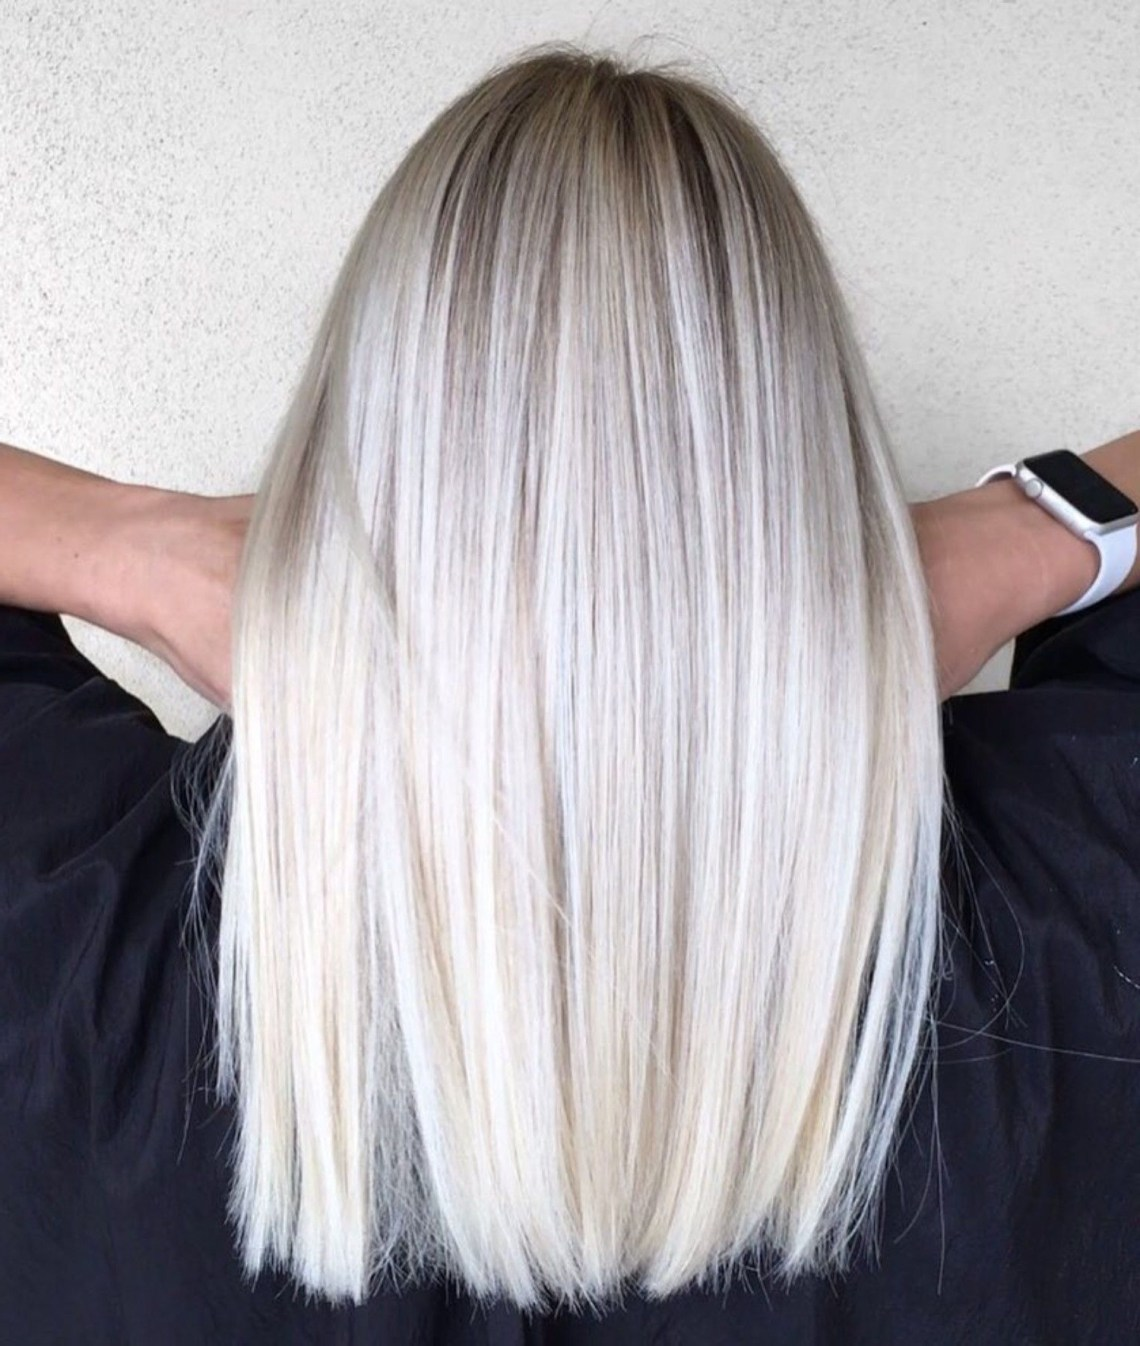 Mid Length Straight Platinum Blonde Hair | Thin Hair Medium Length Blonde Hairstyles Straight